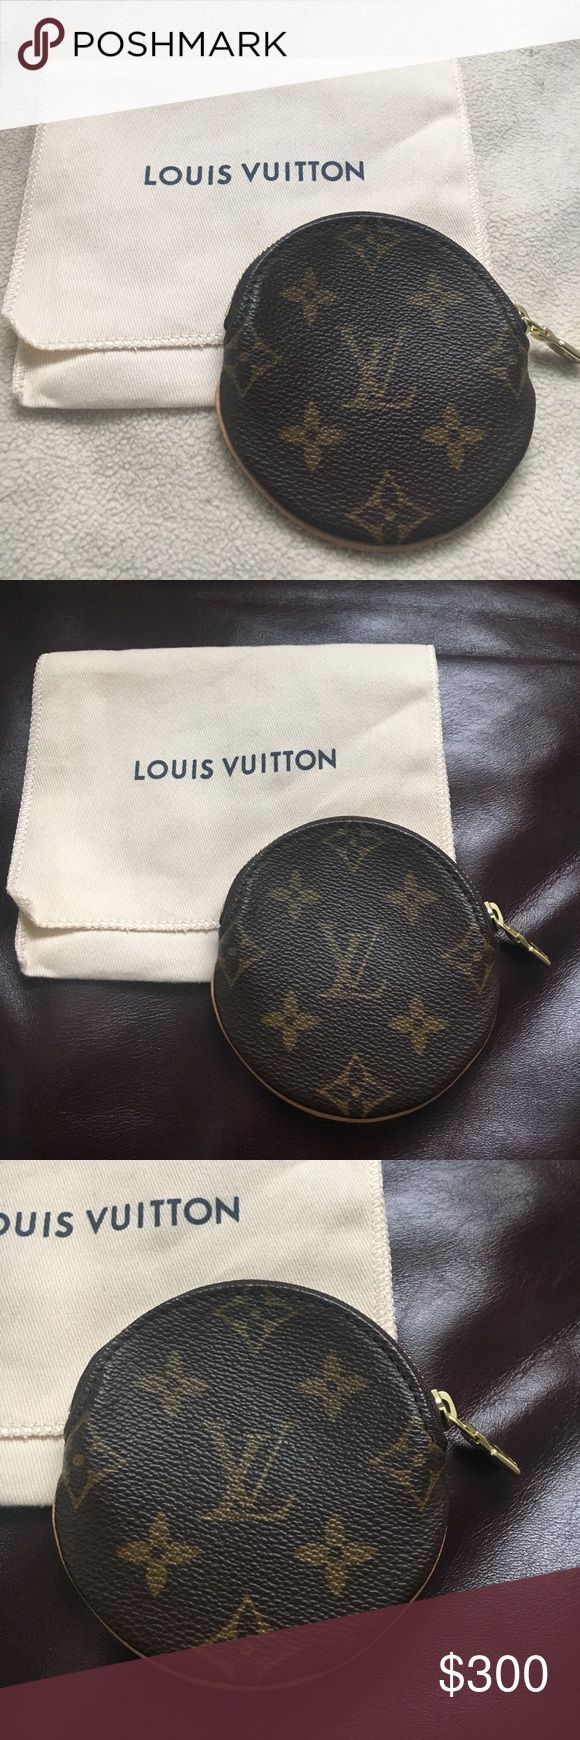 Authentic Louis Vuitton Coin purse 100% authentic LV coin purse purchased from Saks. Never used & in great condition. Comes with dust bag as pictured Louis Vuitton Bags Wallets